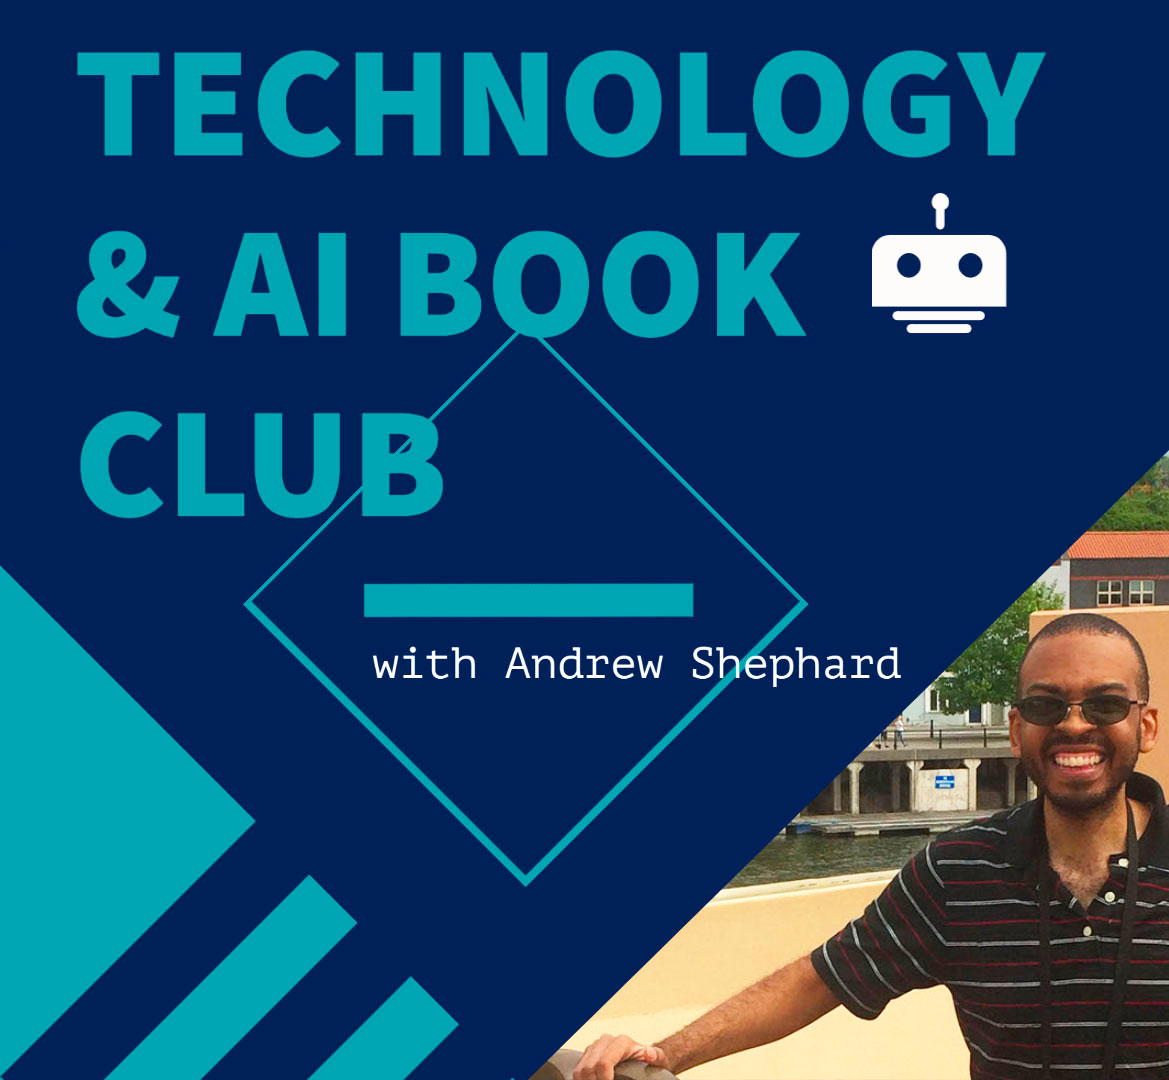 Technology & AI Book Club